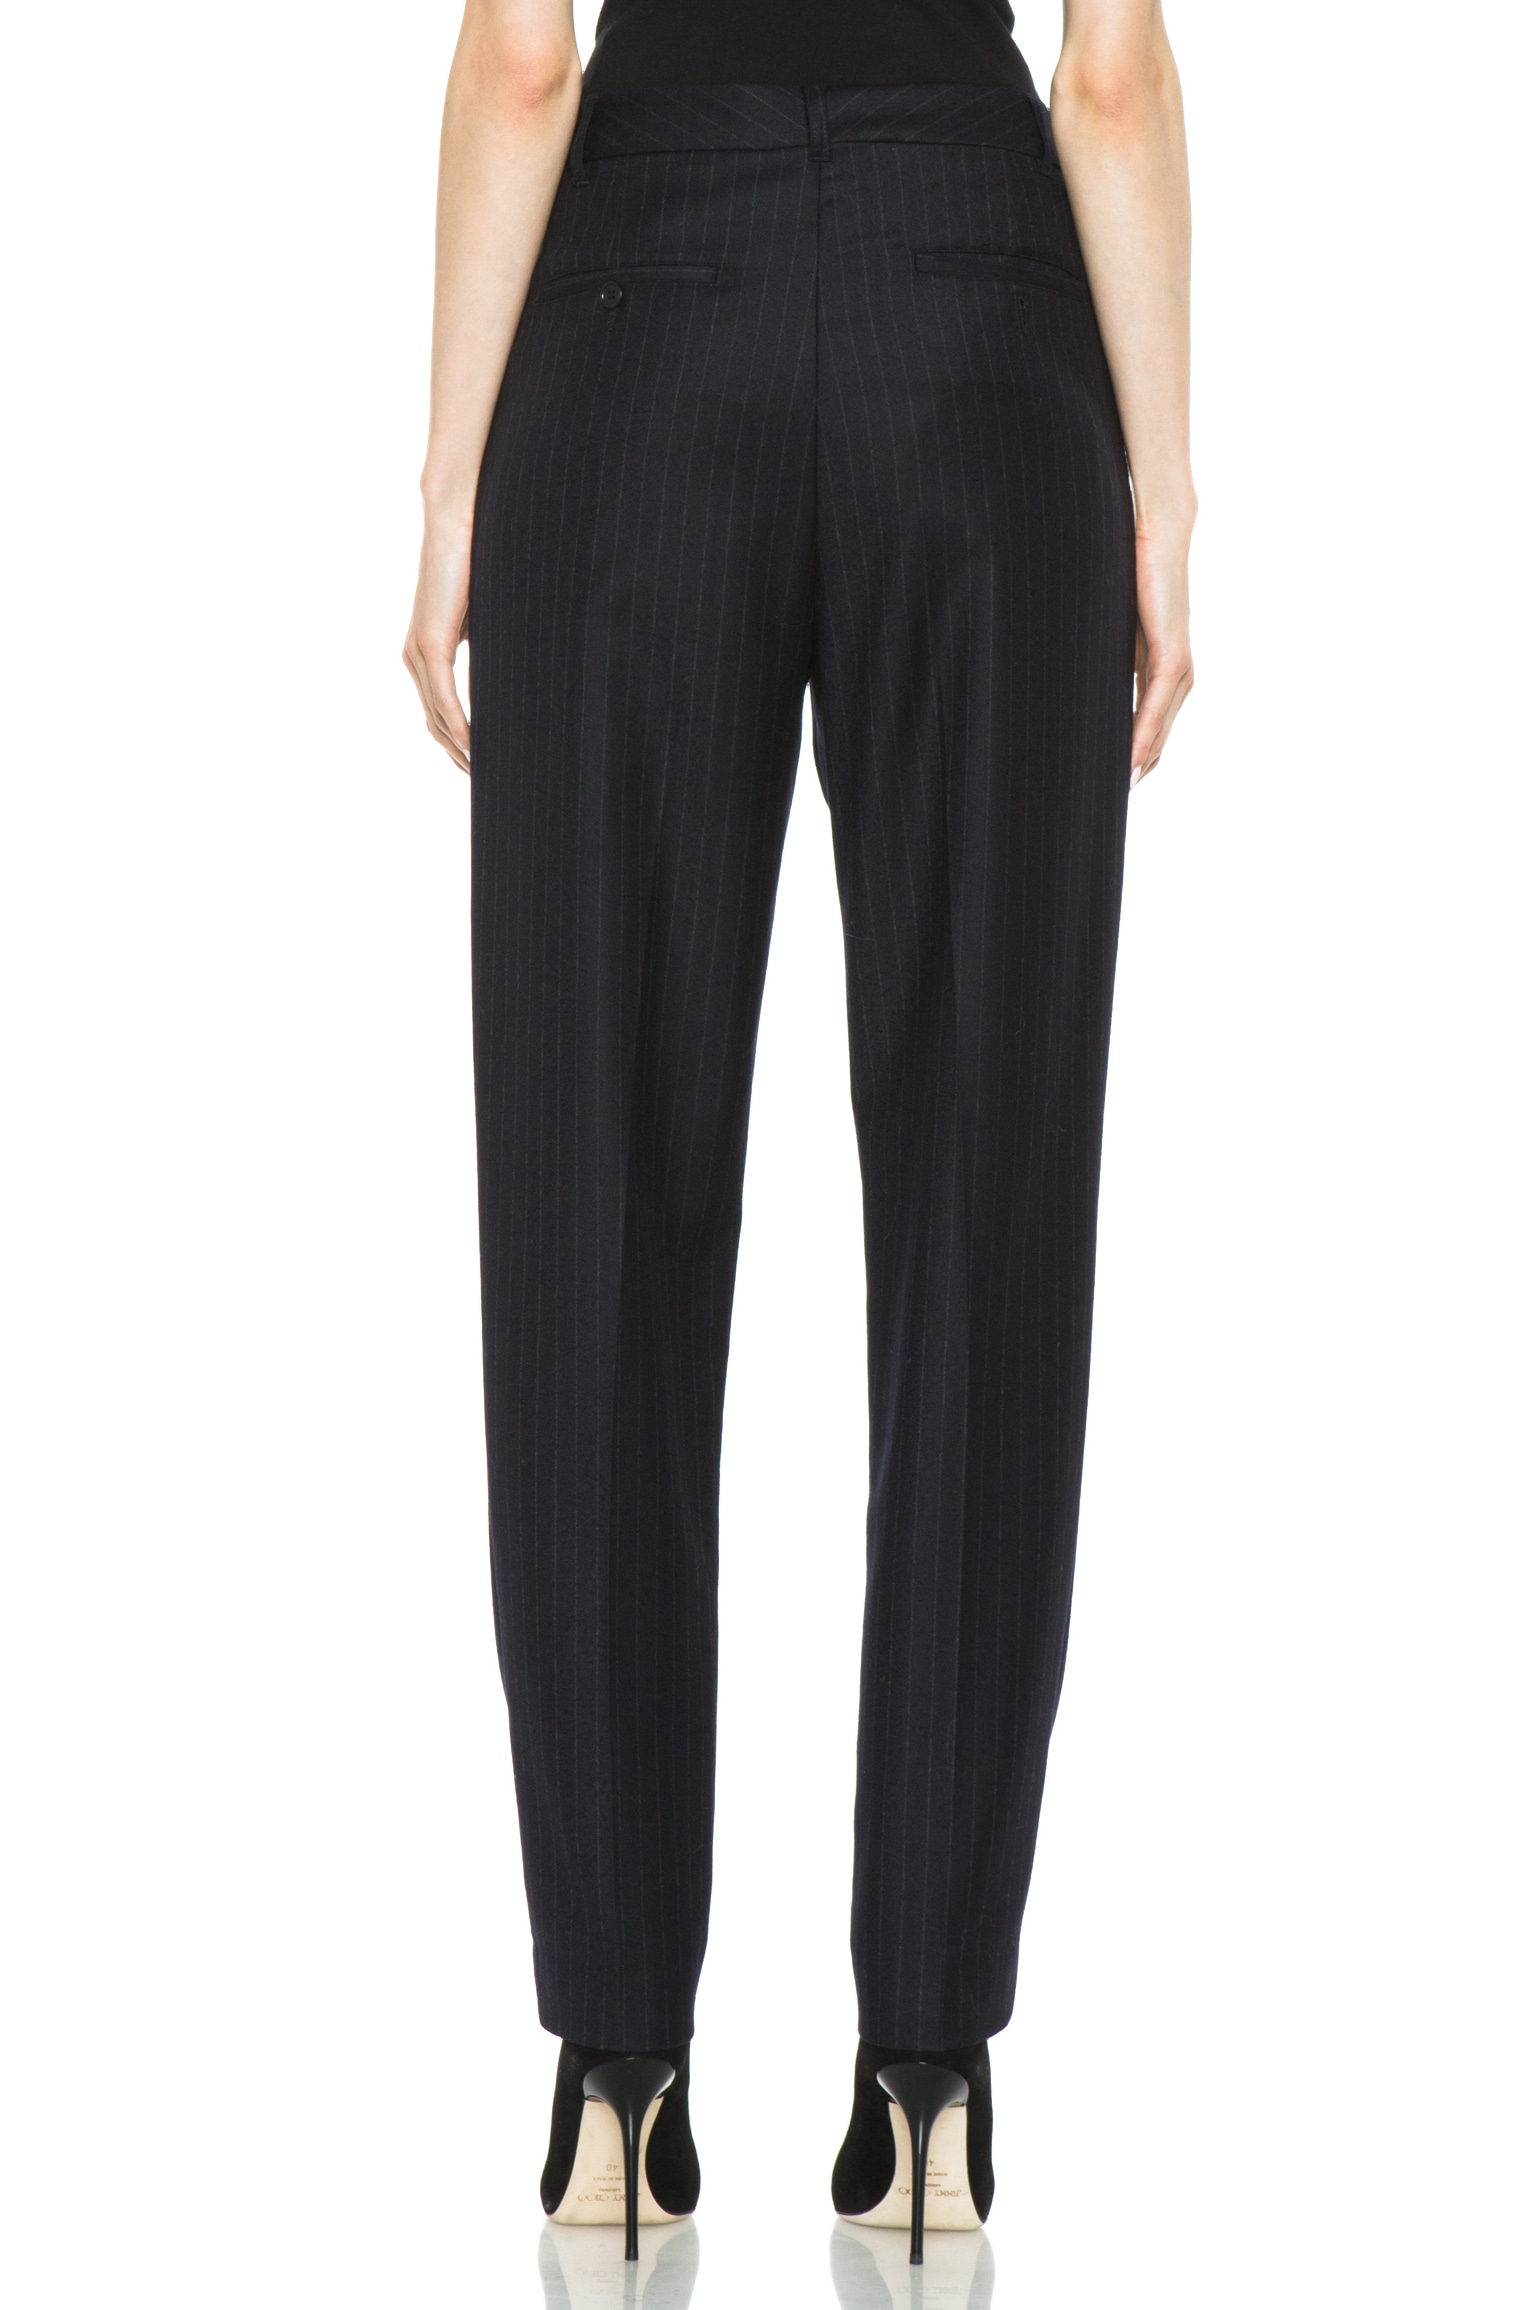 Image 4 of BLK DNM Dropped Crotch Flat Front Wool Pant in Navy Blue Pinstripe